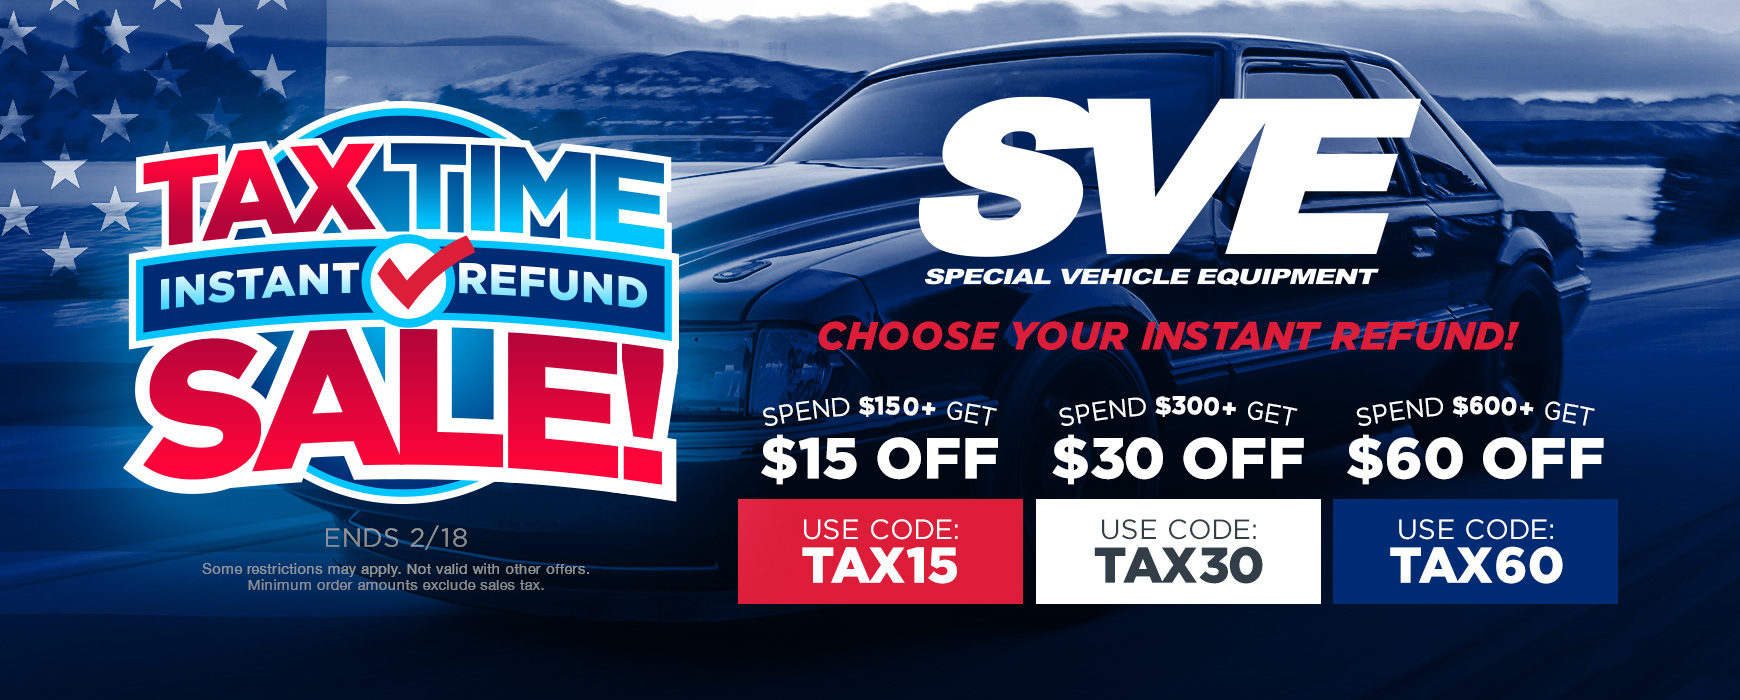 Tax Time Instant Refund Deals on SVE